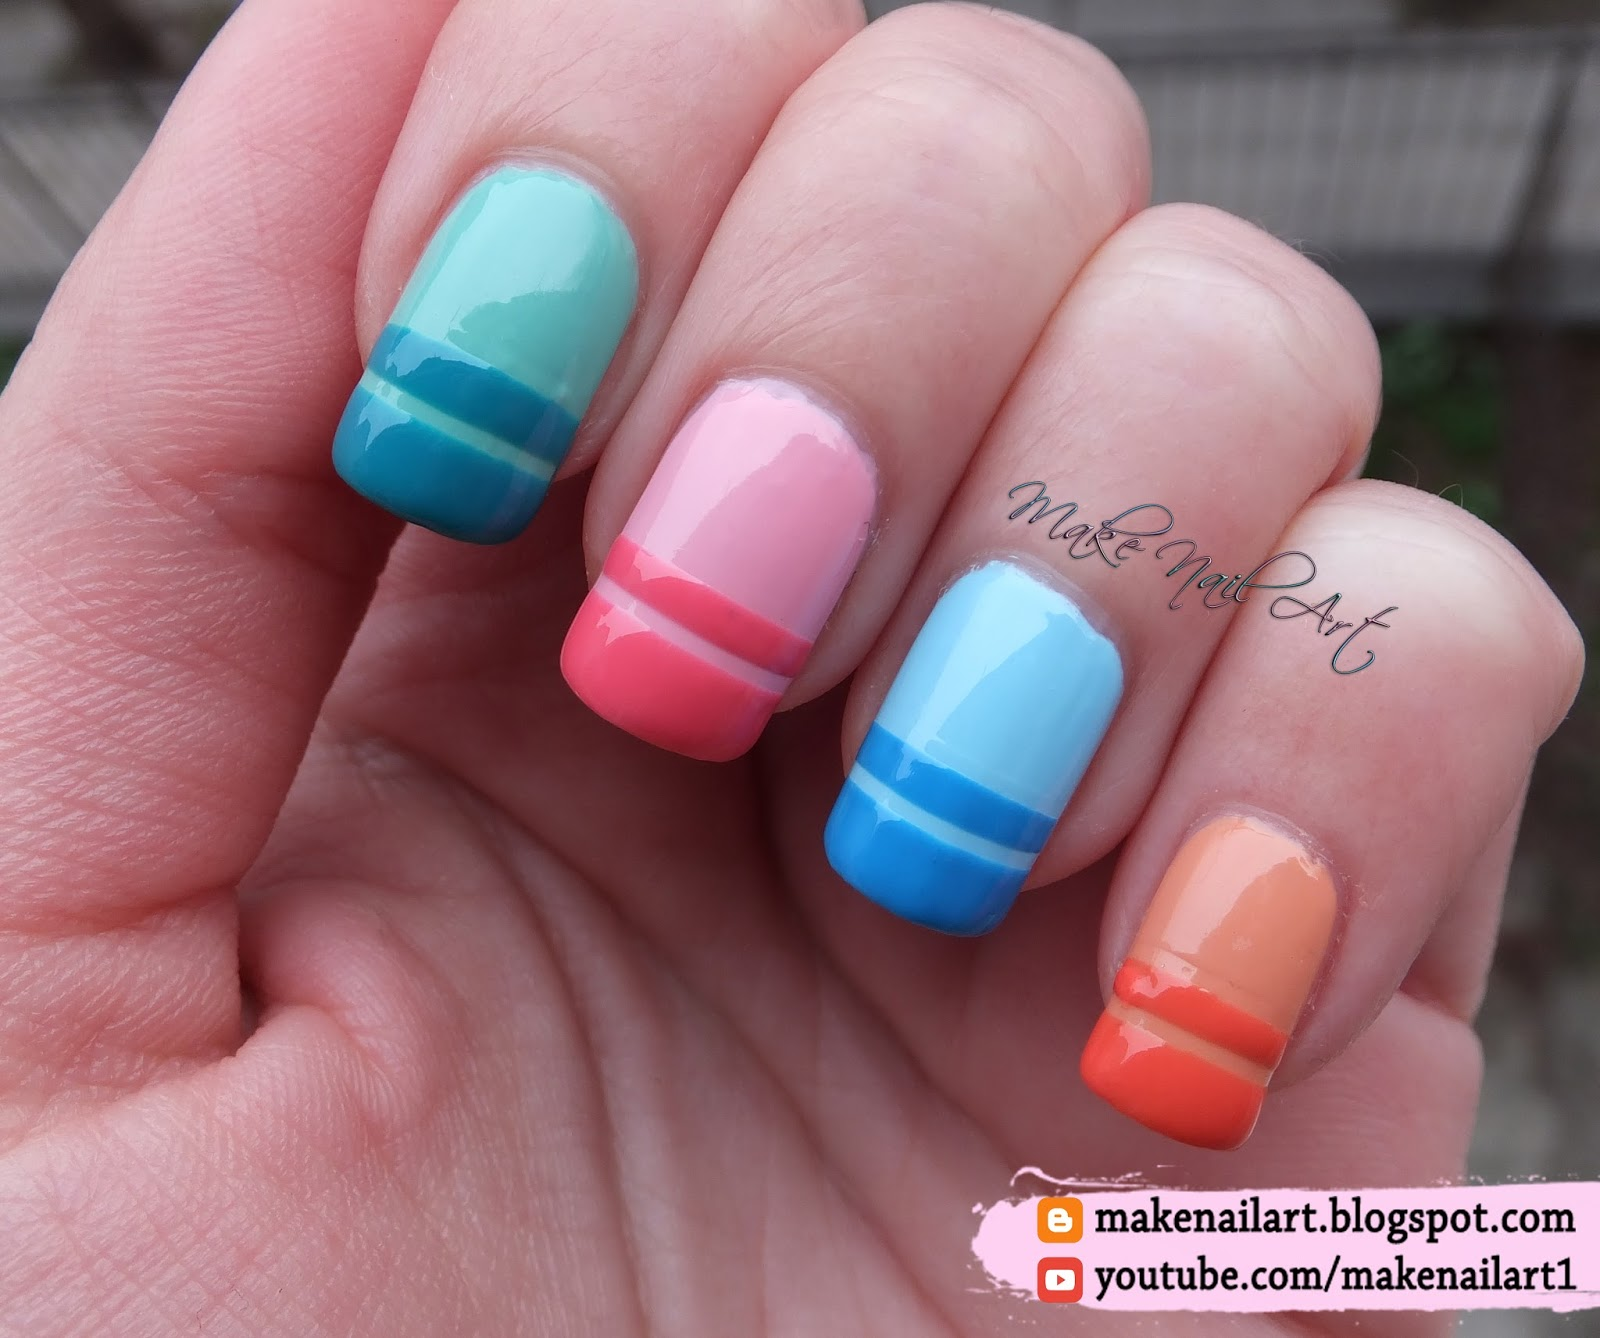 Make Nail Art: Spring / Easter Pastel French Manicure Nail Art ...